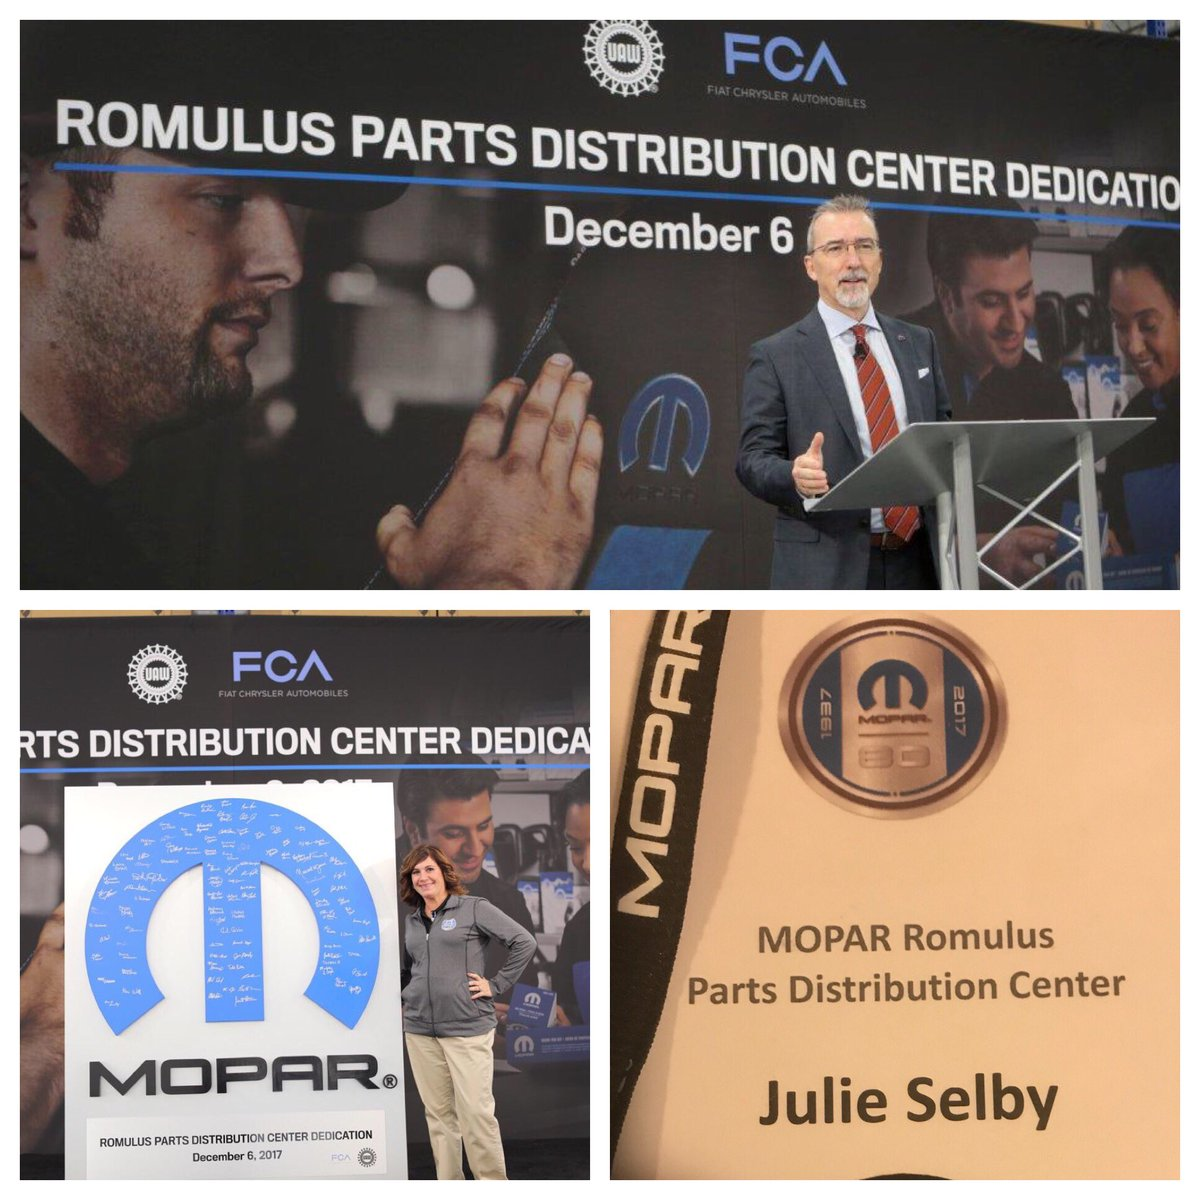 Doing great things at Mopar Romulus PDC today! We crushed the grand opening!  #TeamMopar #EEM <br>http://pic.twitter.com/jnahUW8qEb